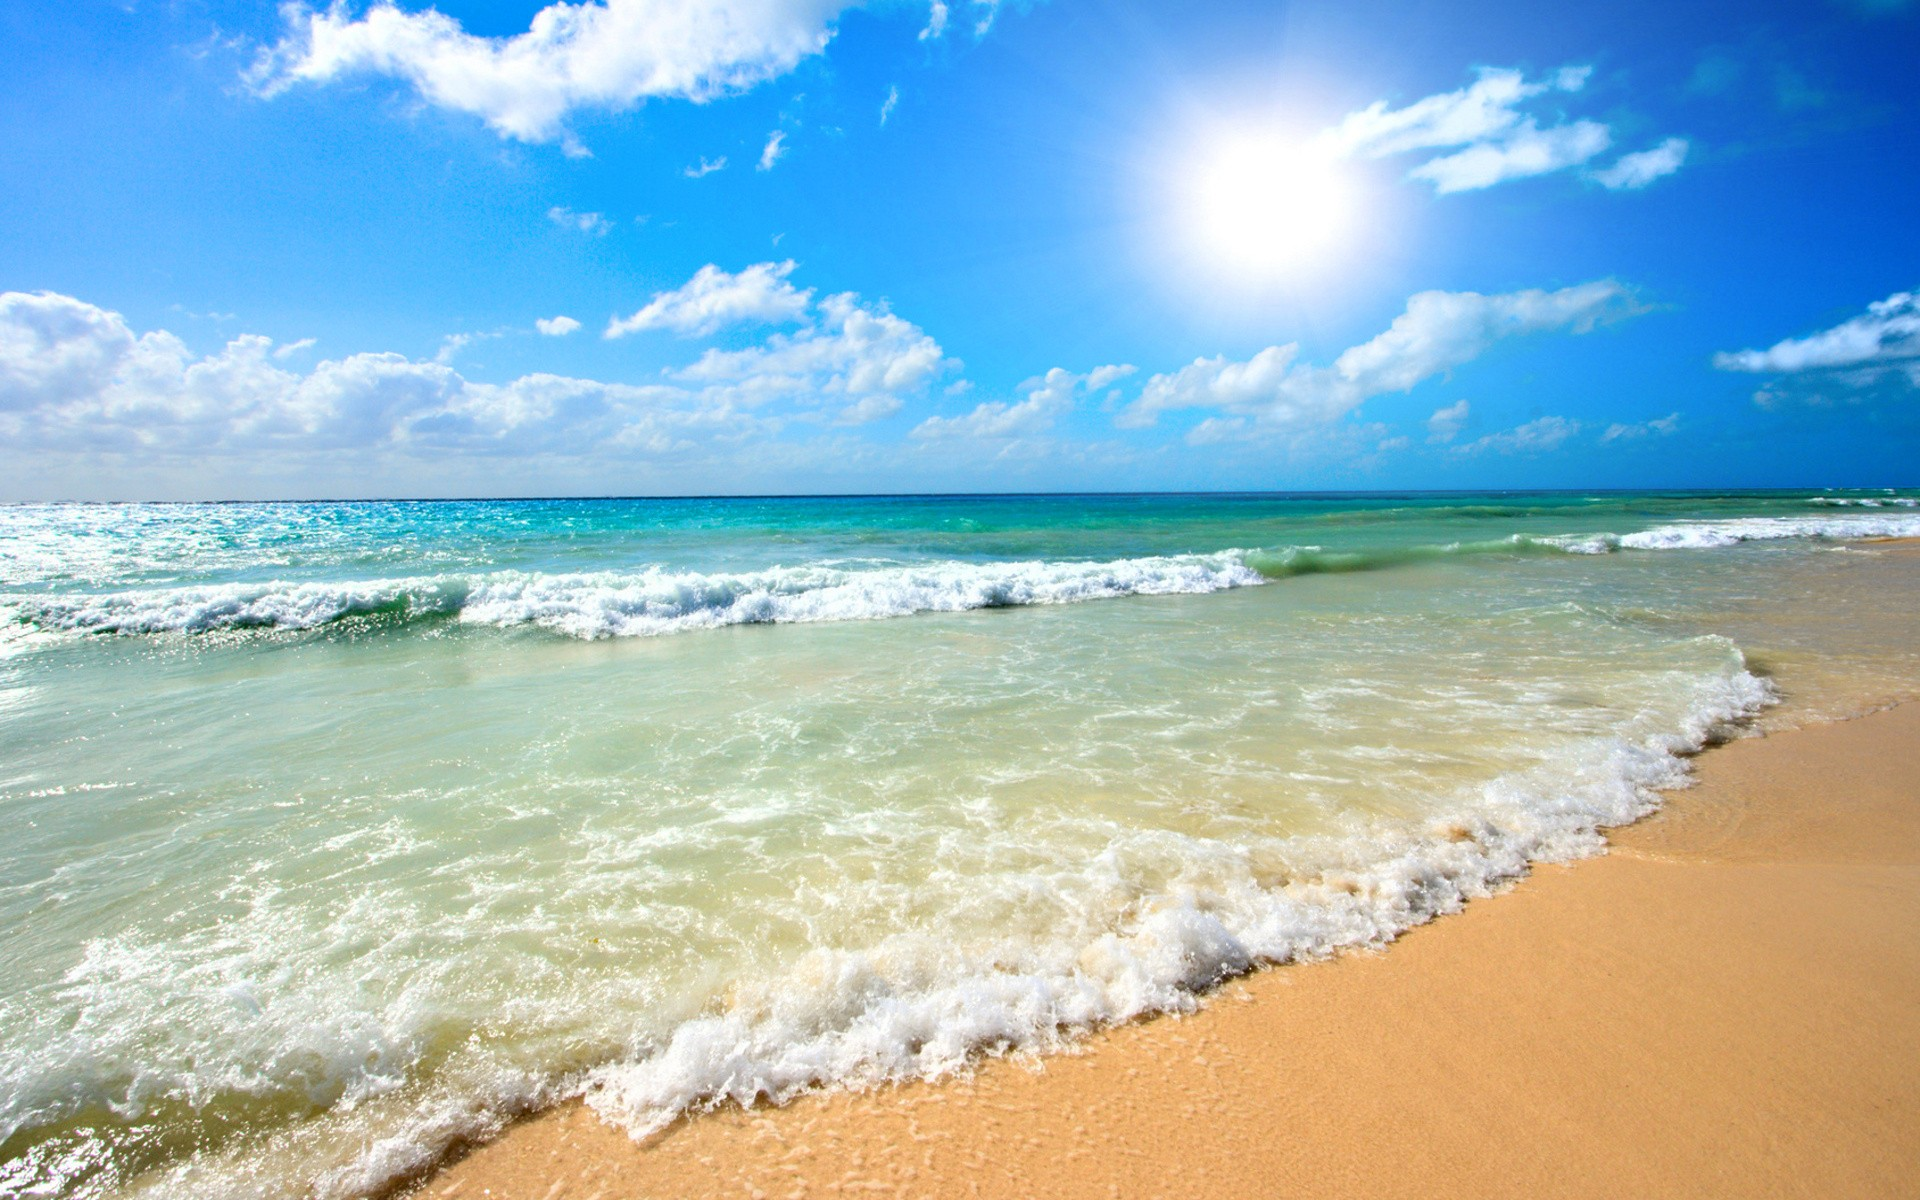 Caribbean Iphone Wallpaper Sunshine Over The Ocean Full Hd Fond D 233 Cran And Arri 232 Re